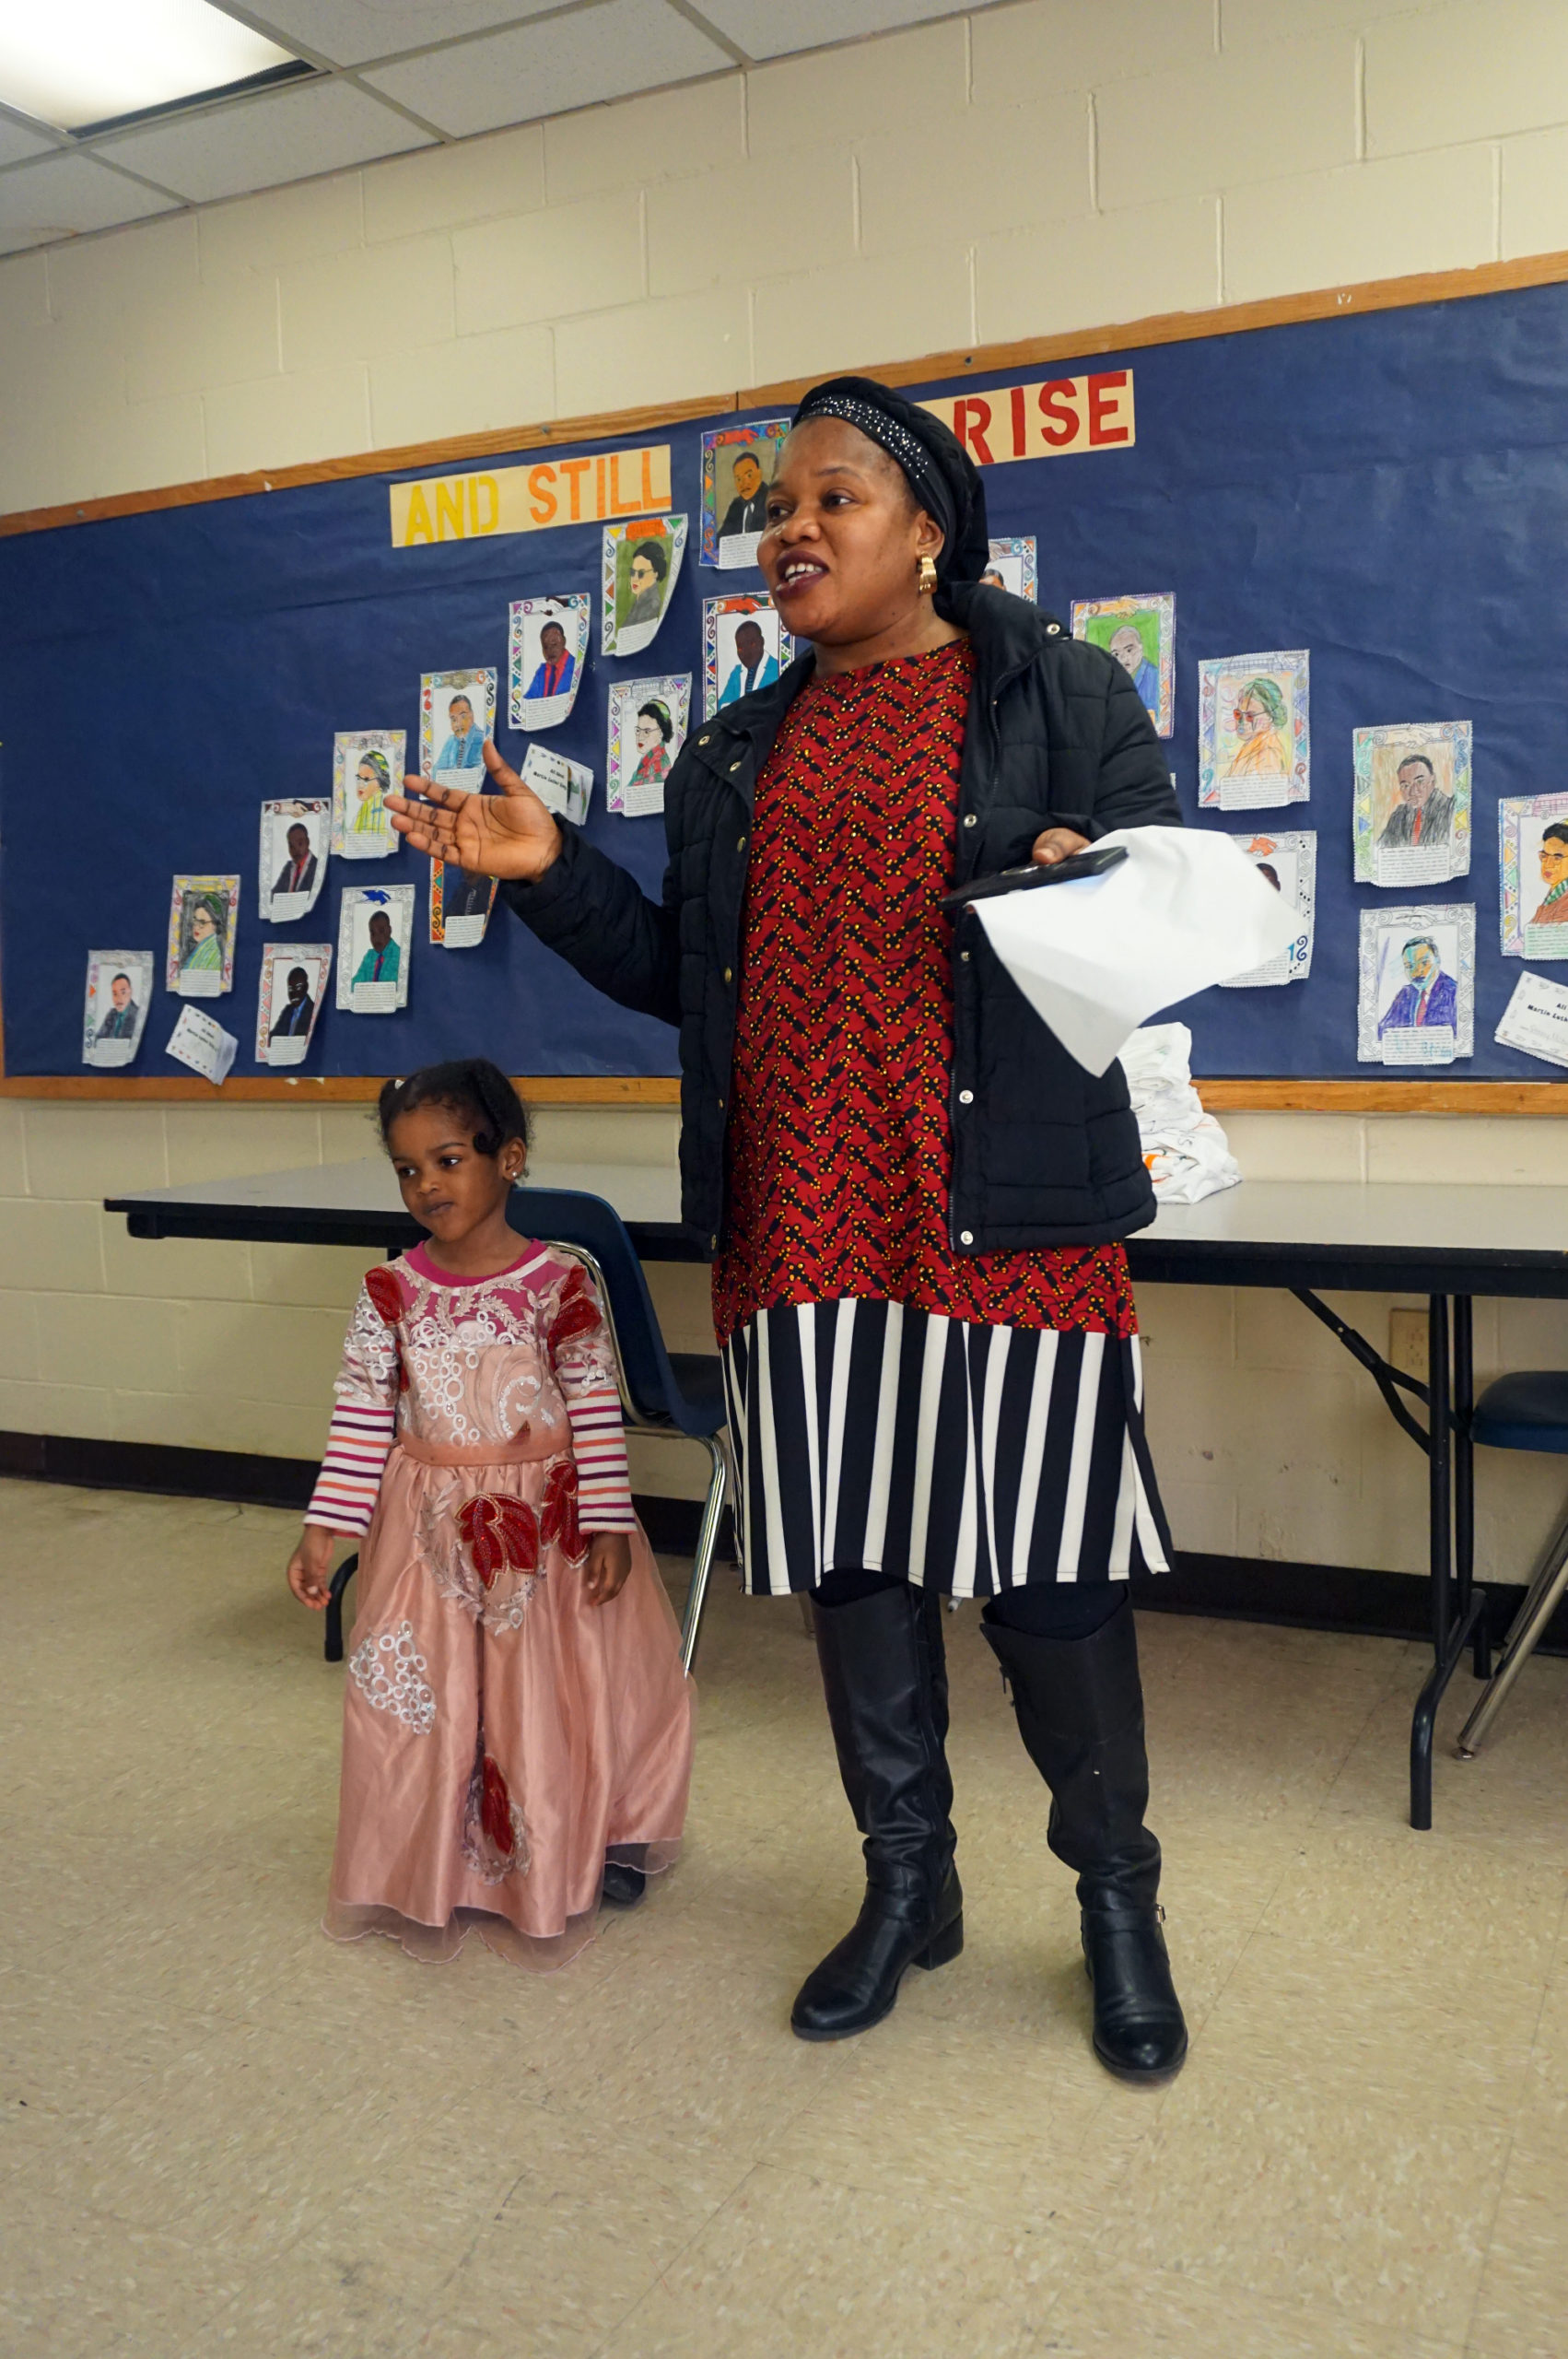 HHELC Cultural Diversity Day 2020 Mother in Red and Black Daughter in Dress